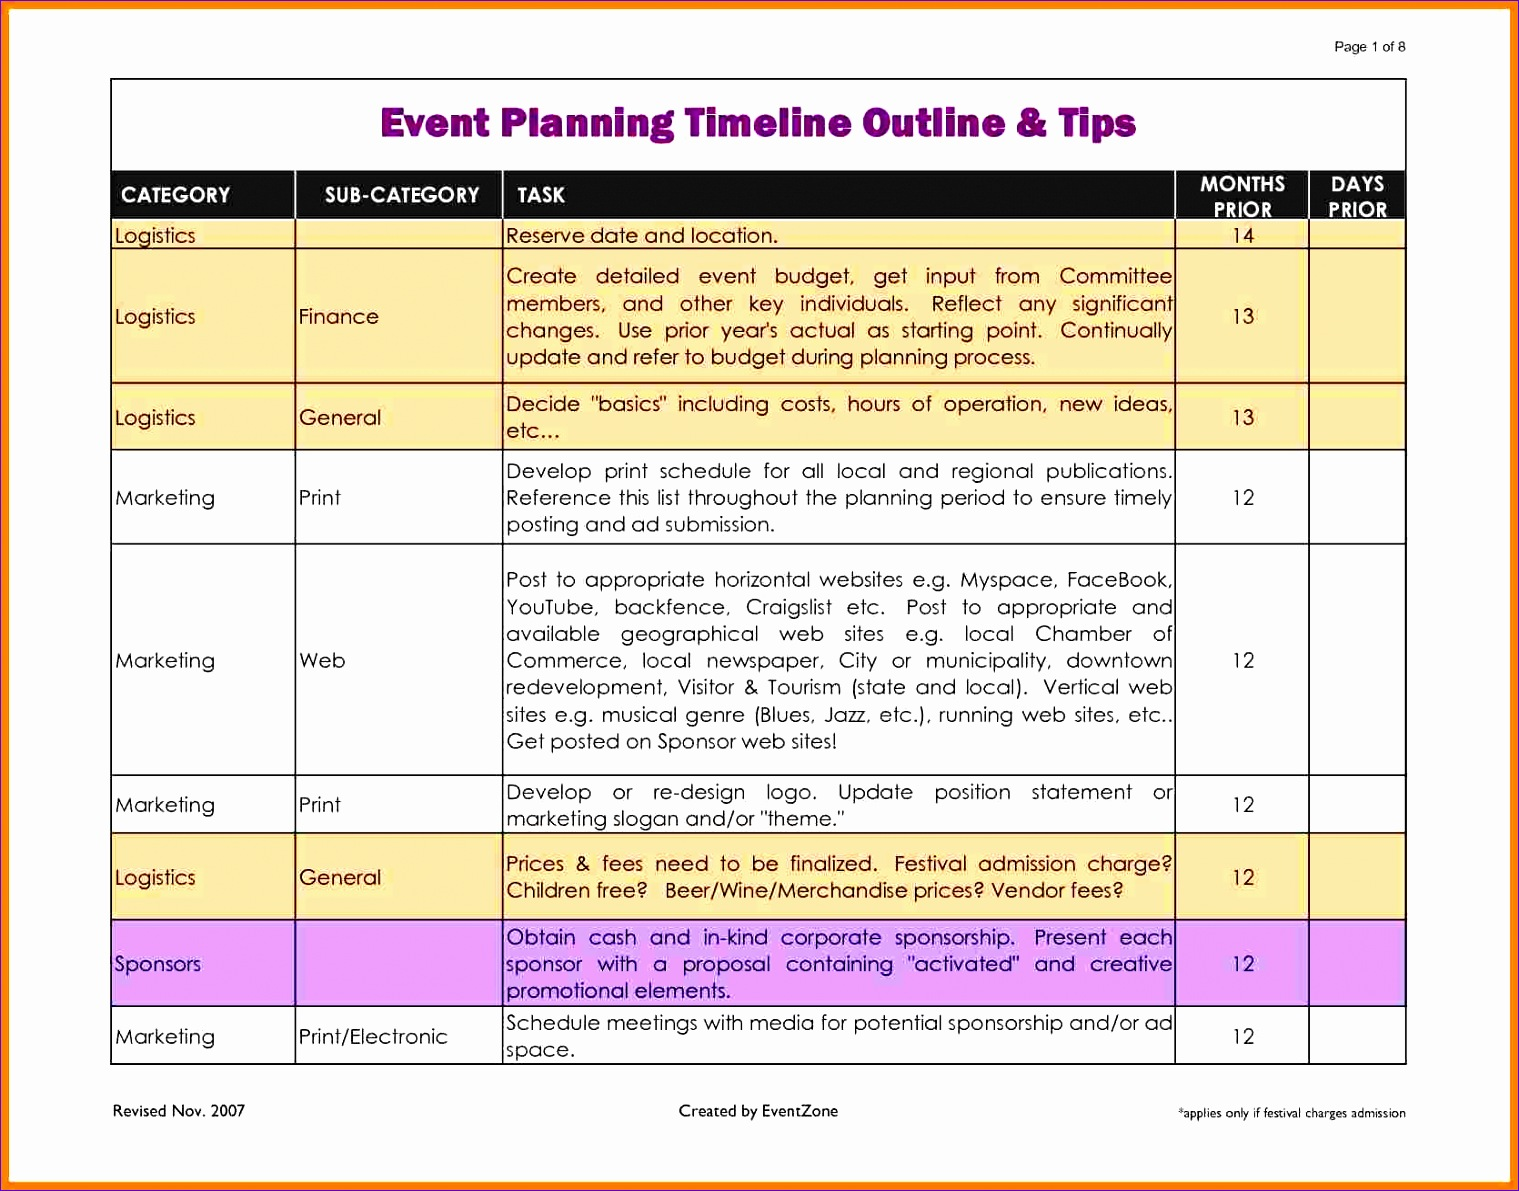 Free event Planning Checklist Template Excel Ksgso New 10 event Planning Timeline Template Excel